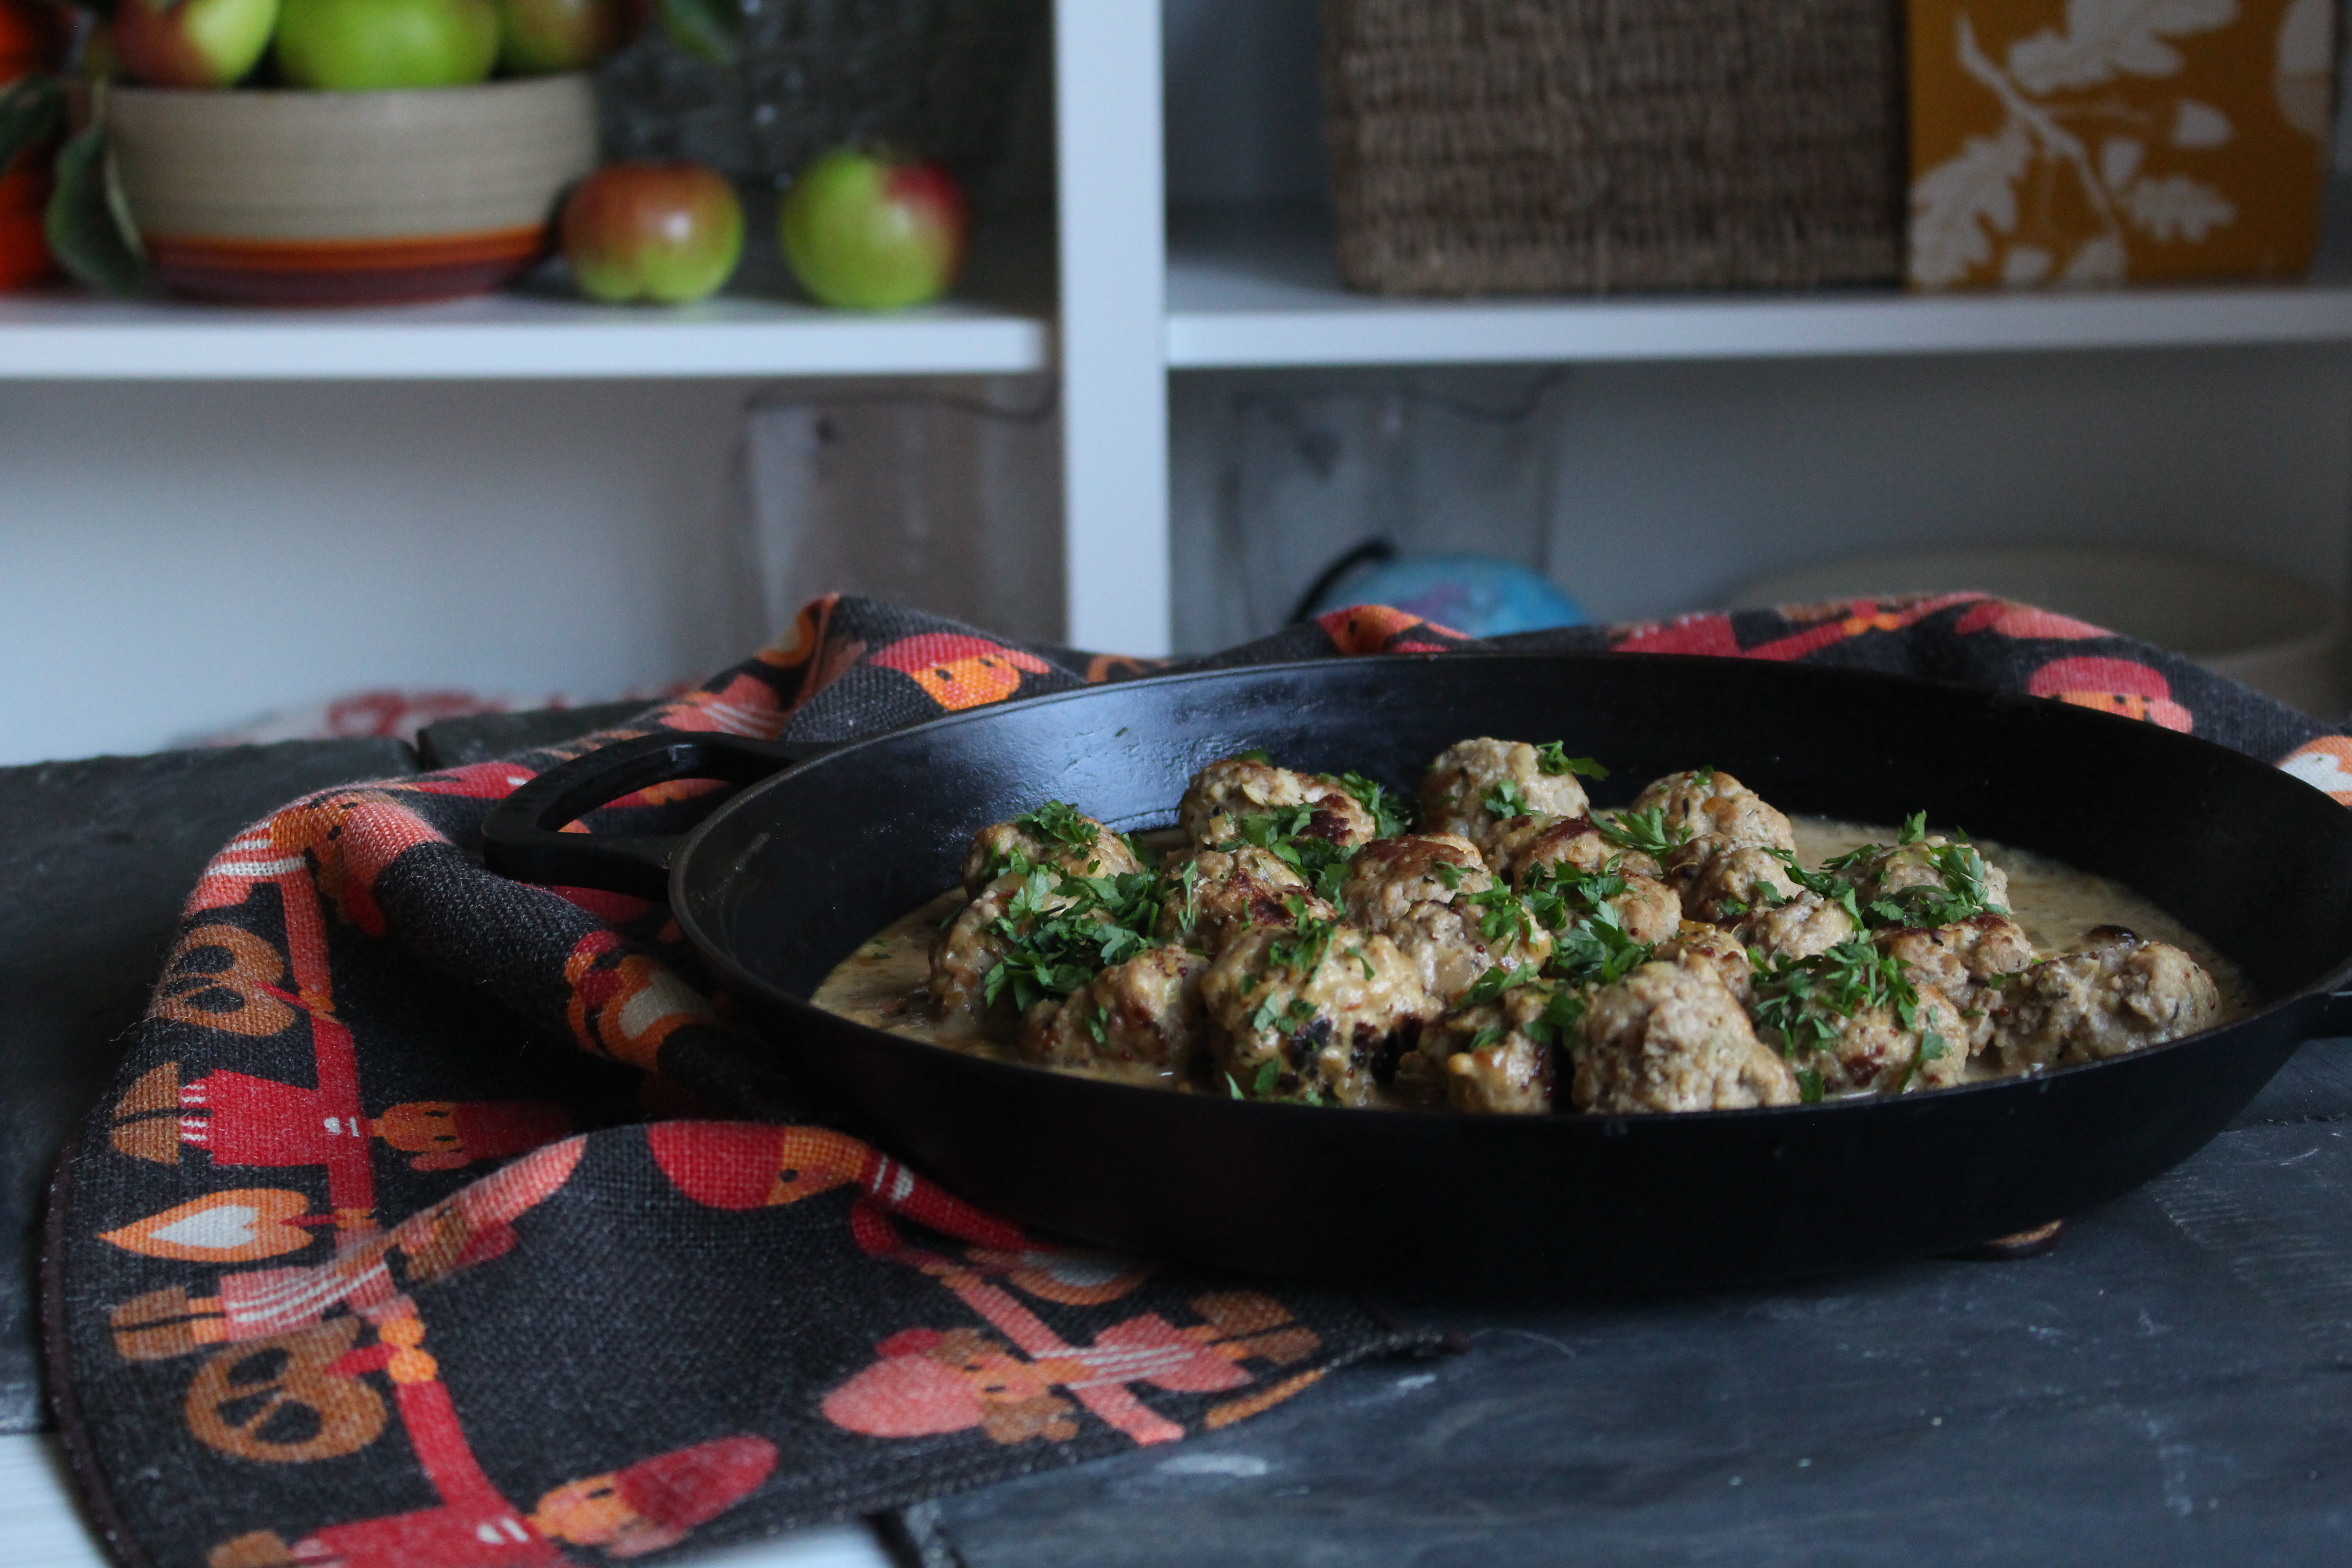 Ikea style Swedish pork meatballs, seasoned with fennel seeds and cooked in a creamy sauce. Ultimate comfort food.